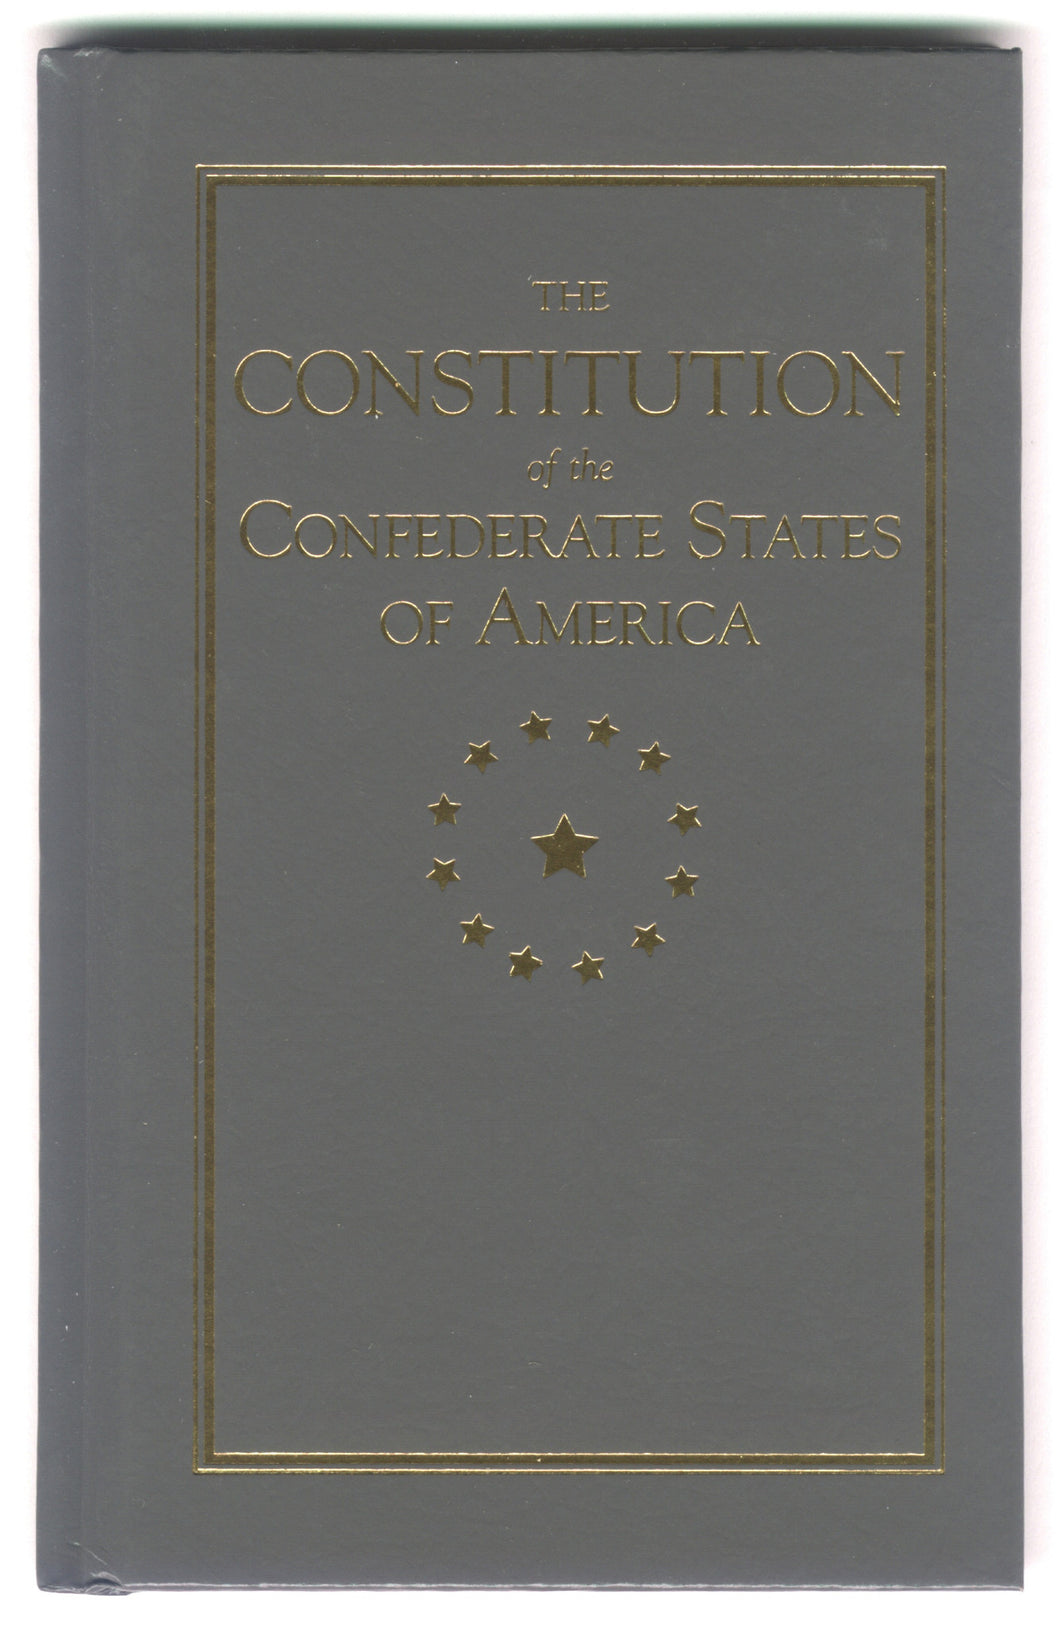 Books, The Constitution of the Confederate States of America